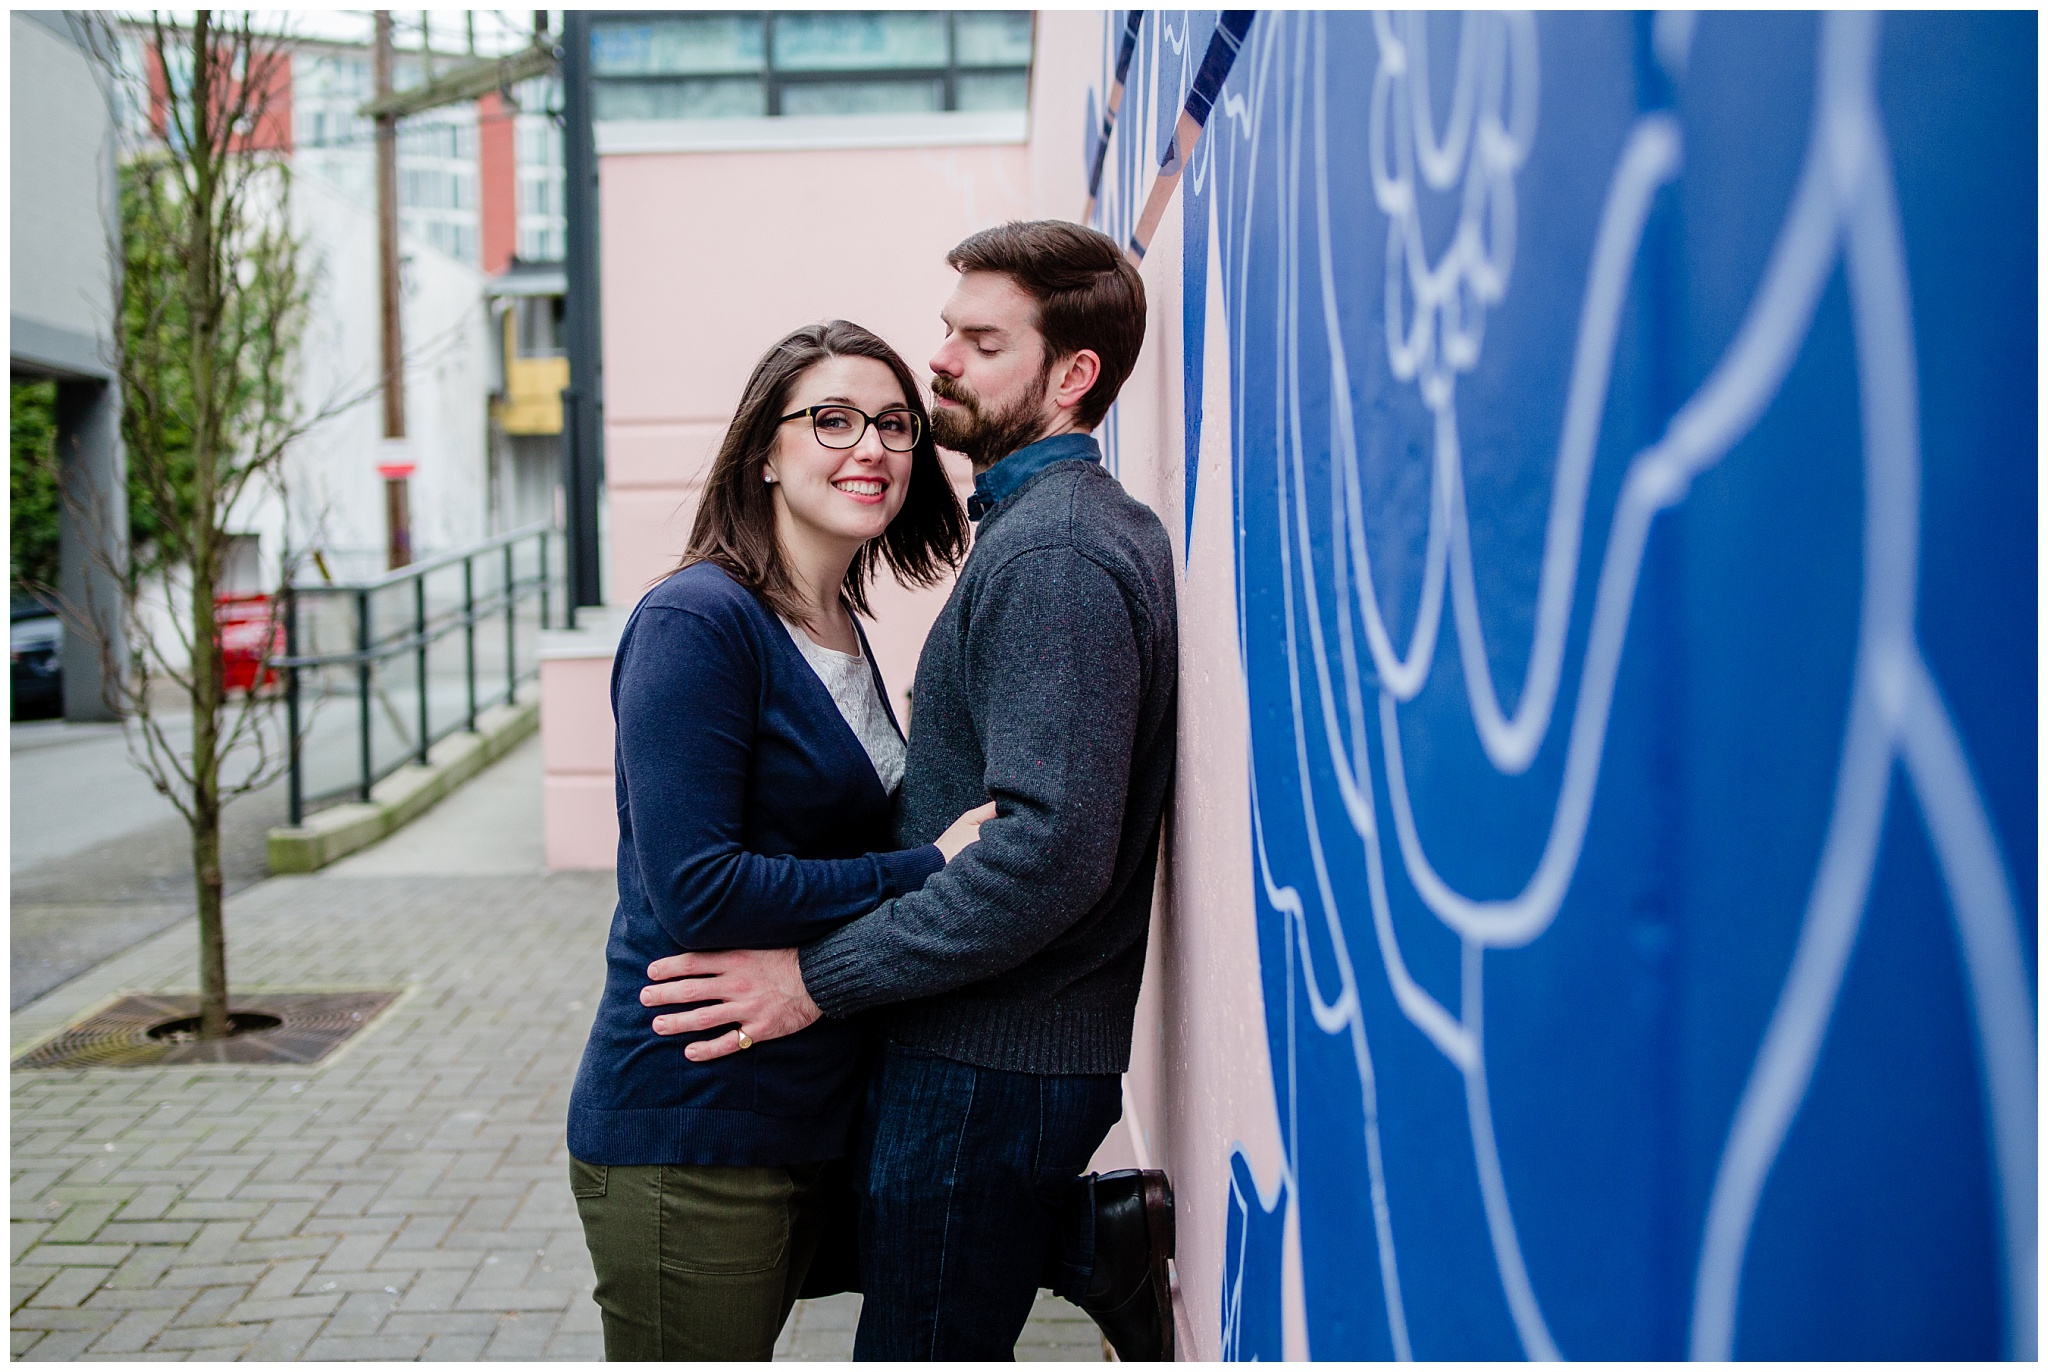 Olympic Village Mural Walk Engagement Urban Fun Casual Photography Mimsical Photography 2019_0003.jpg